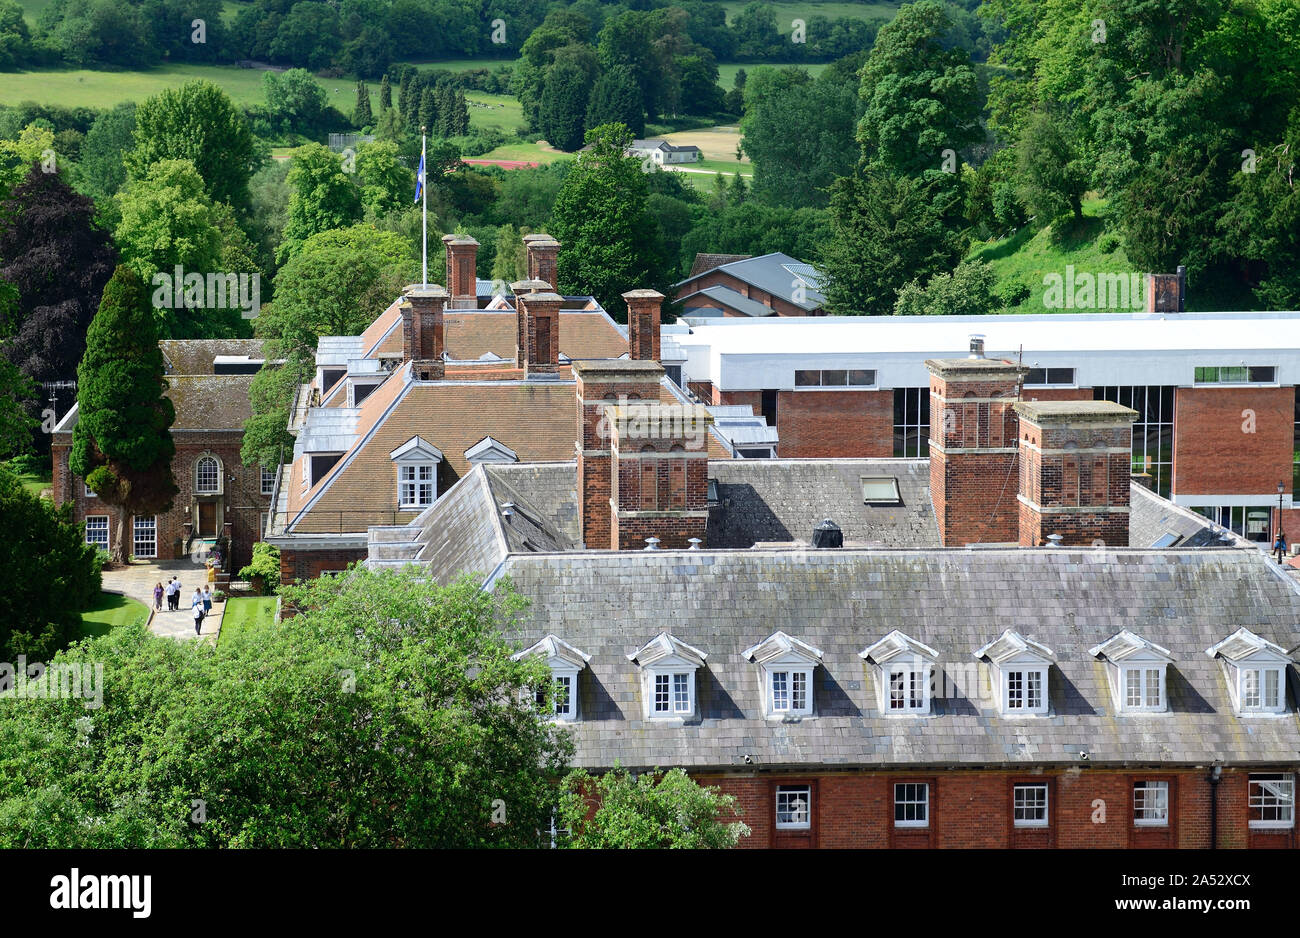 Part of Marlborough College, seen from the tower of St Peter's church. Stock Photo